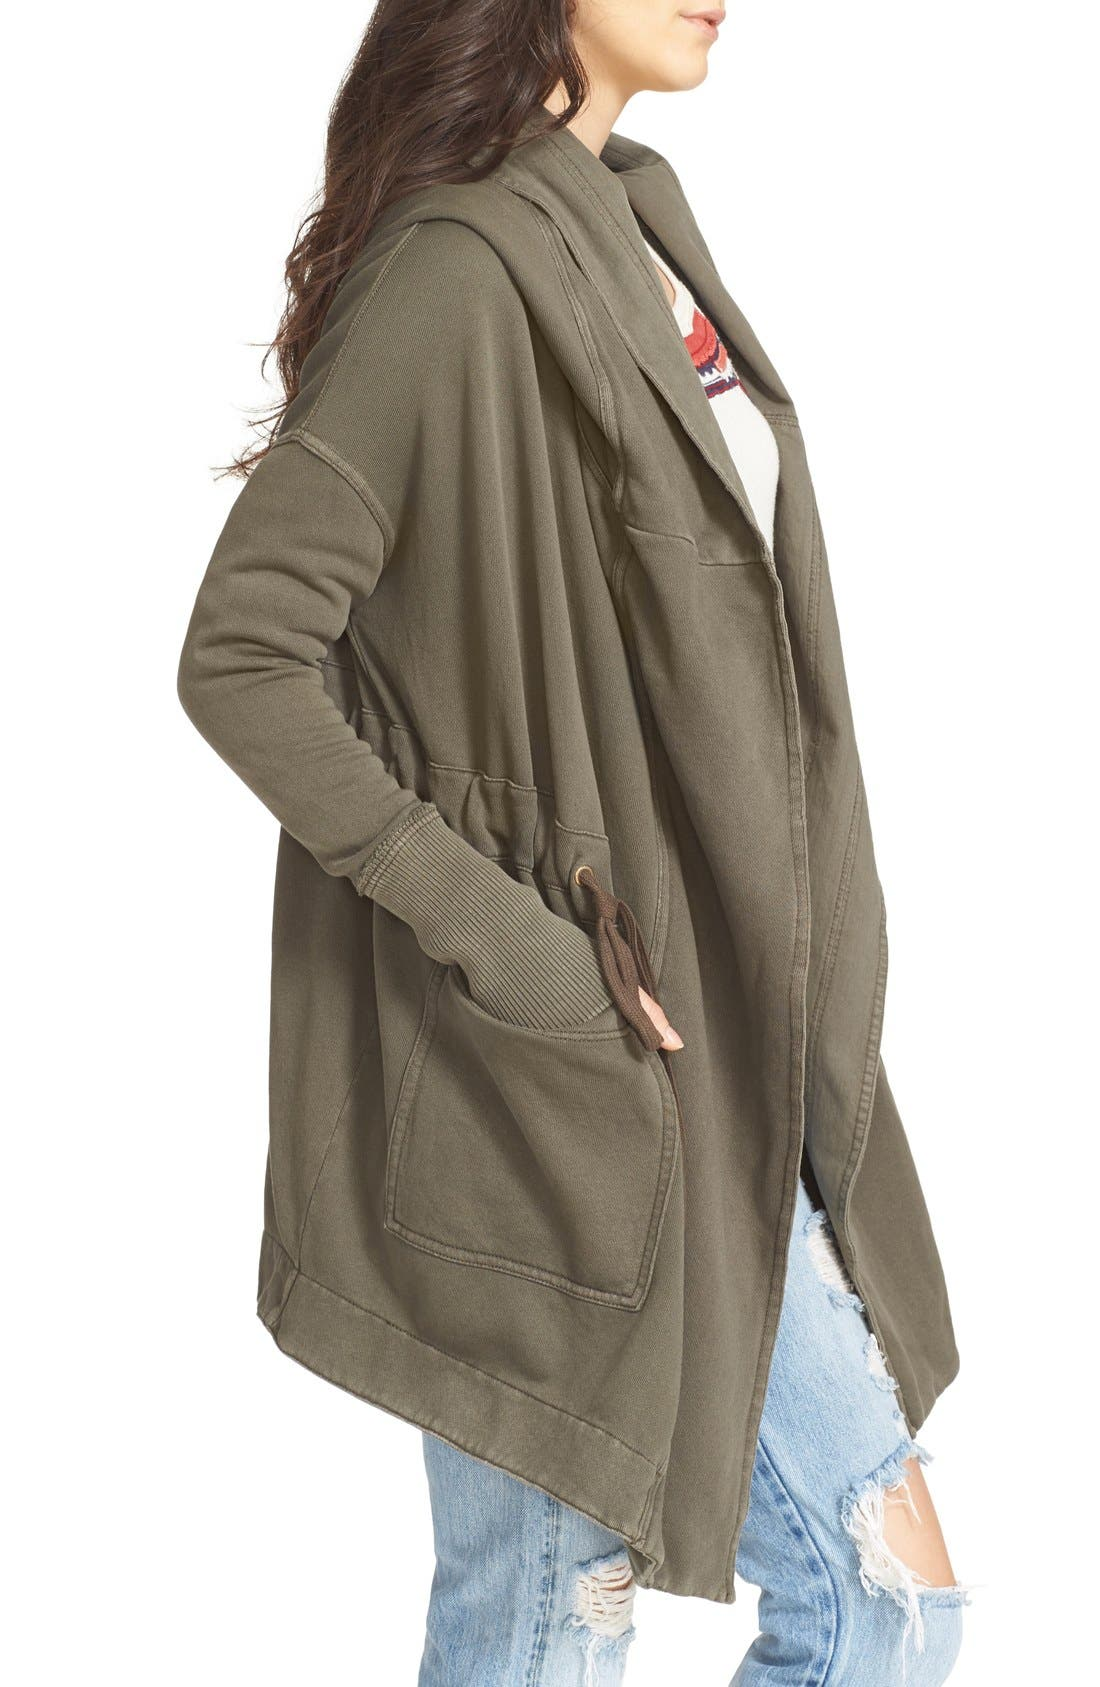 Brentwood Cotton Cardigan,                             Alternate thumbnail 6, color,                             350